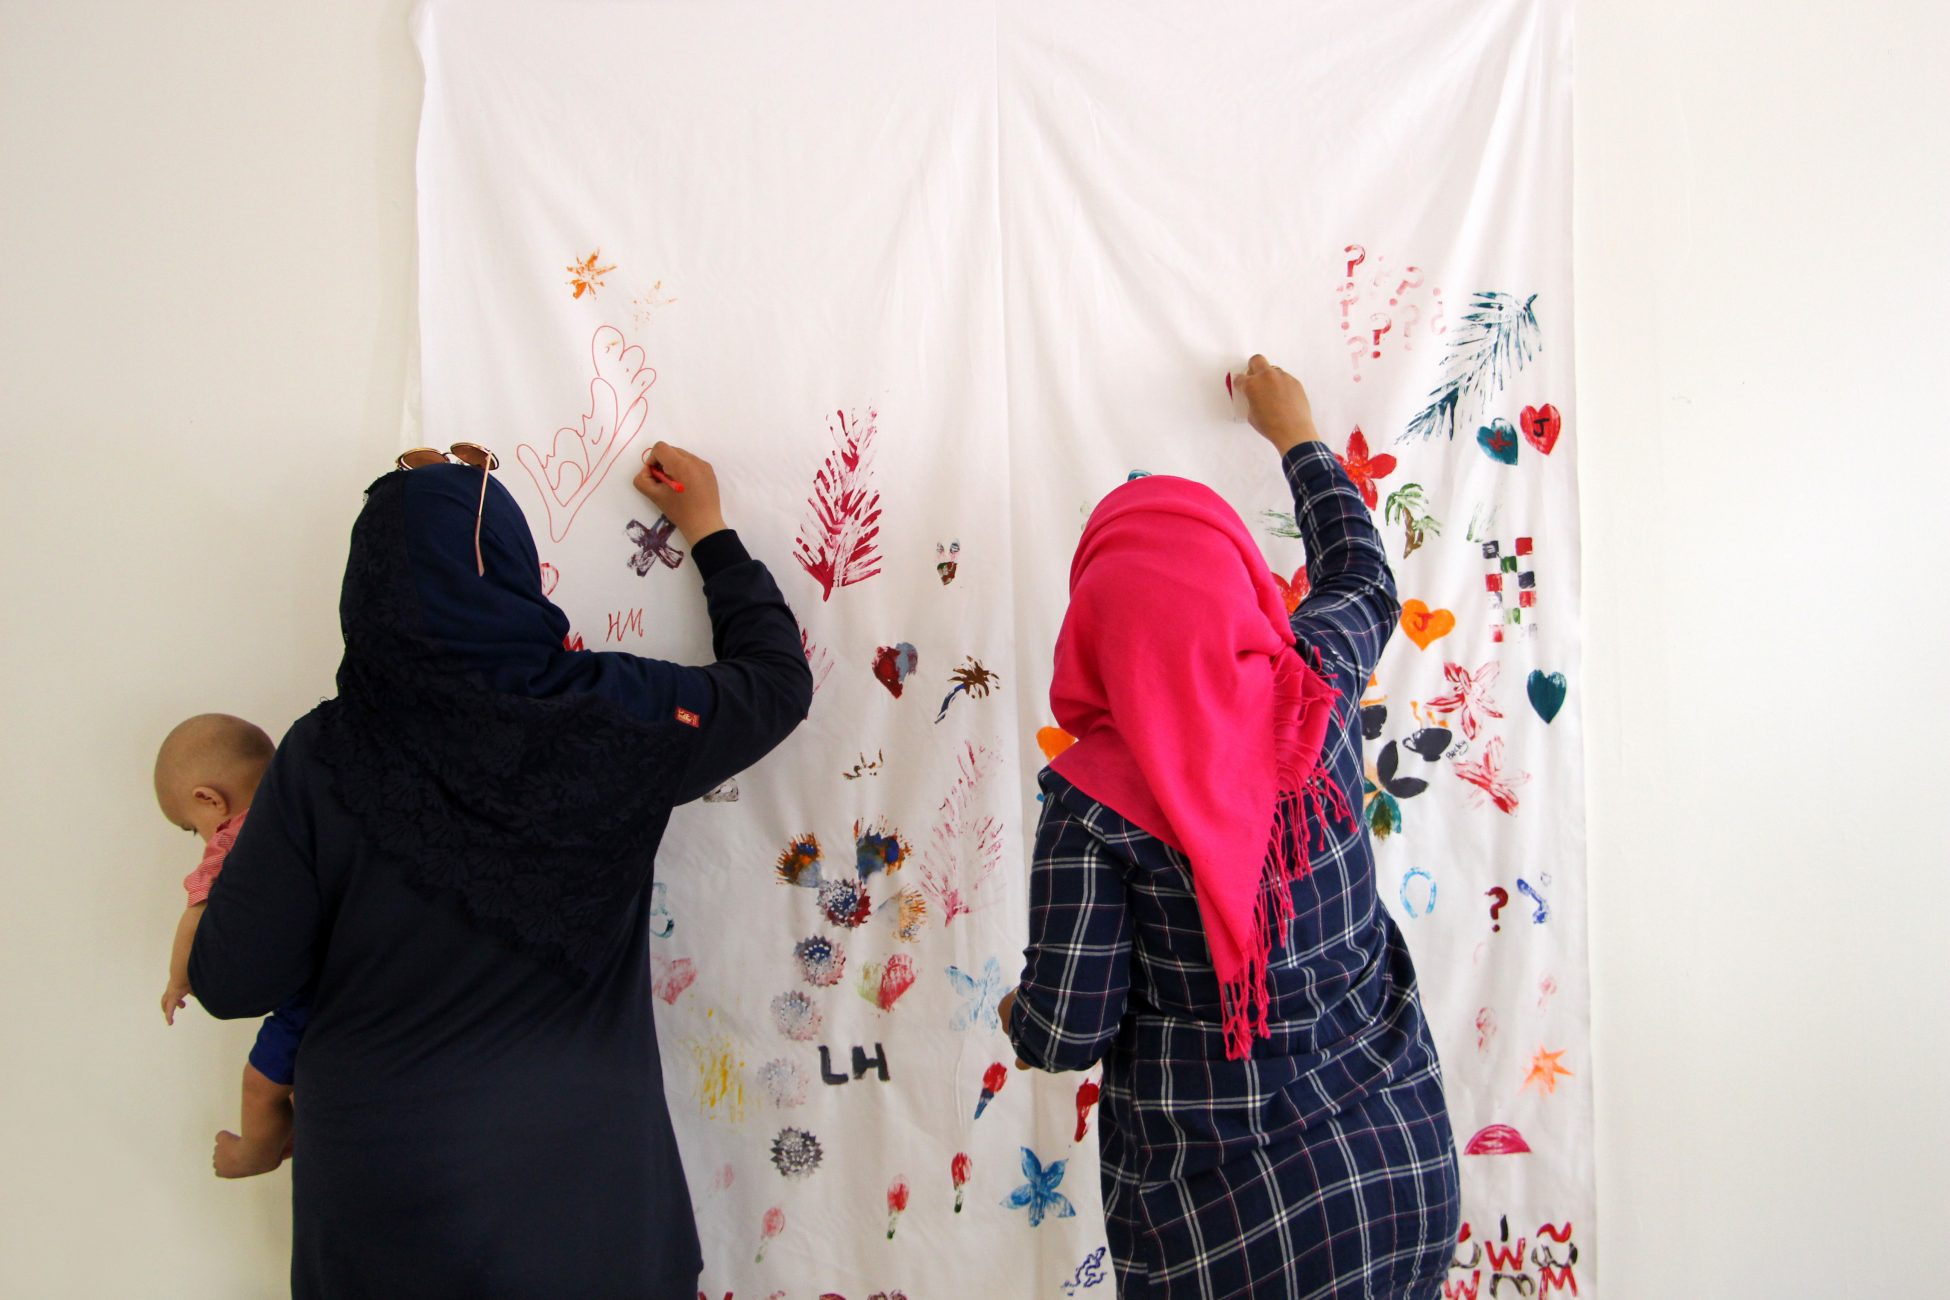 A photo of two women wearing hijabs facing away from the camera and decorating a piece of white fabric hanging up on a wall. One of the women is holding a baby in one arm.